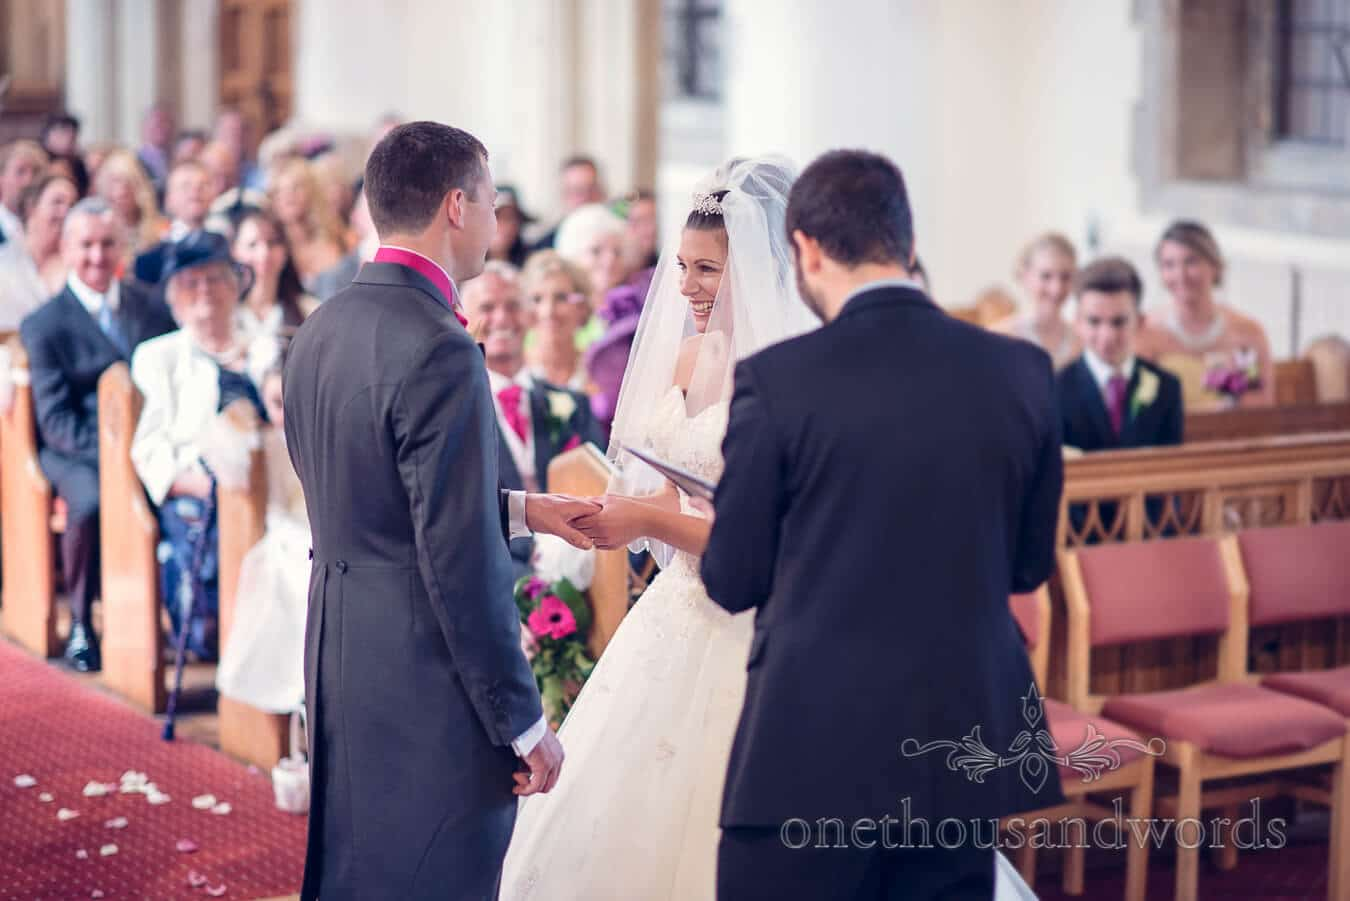 Exchange of vows during church wedding